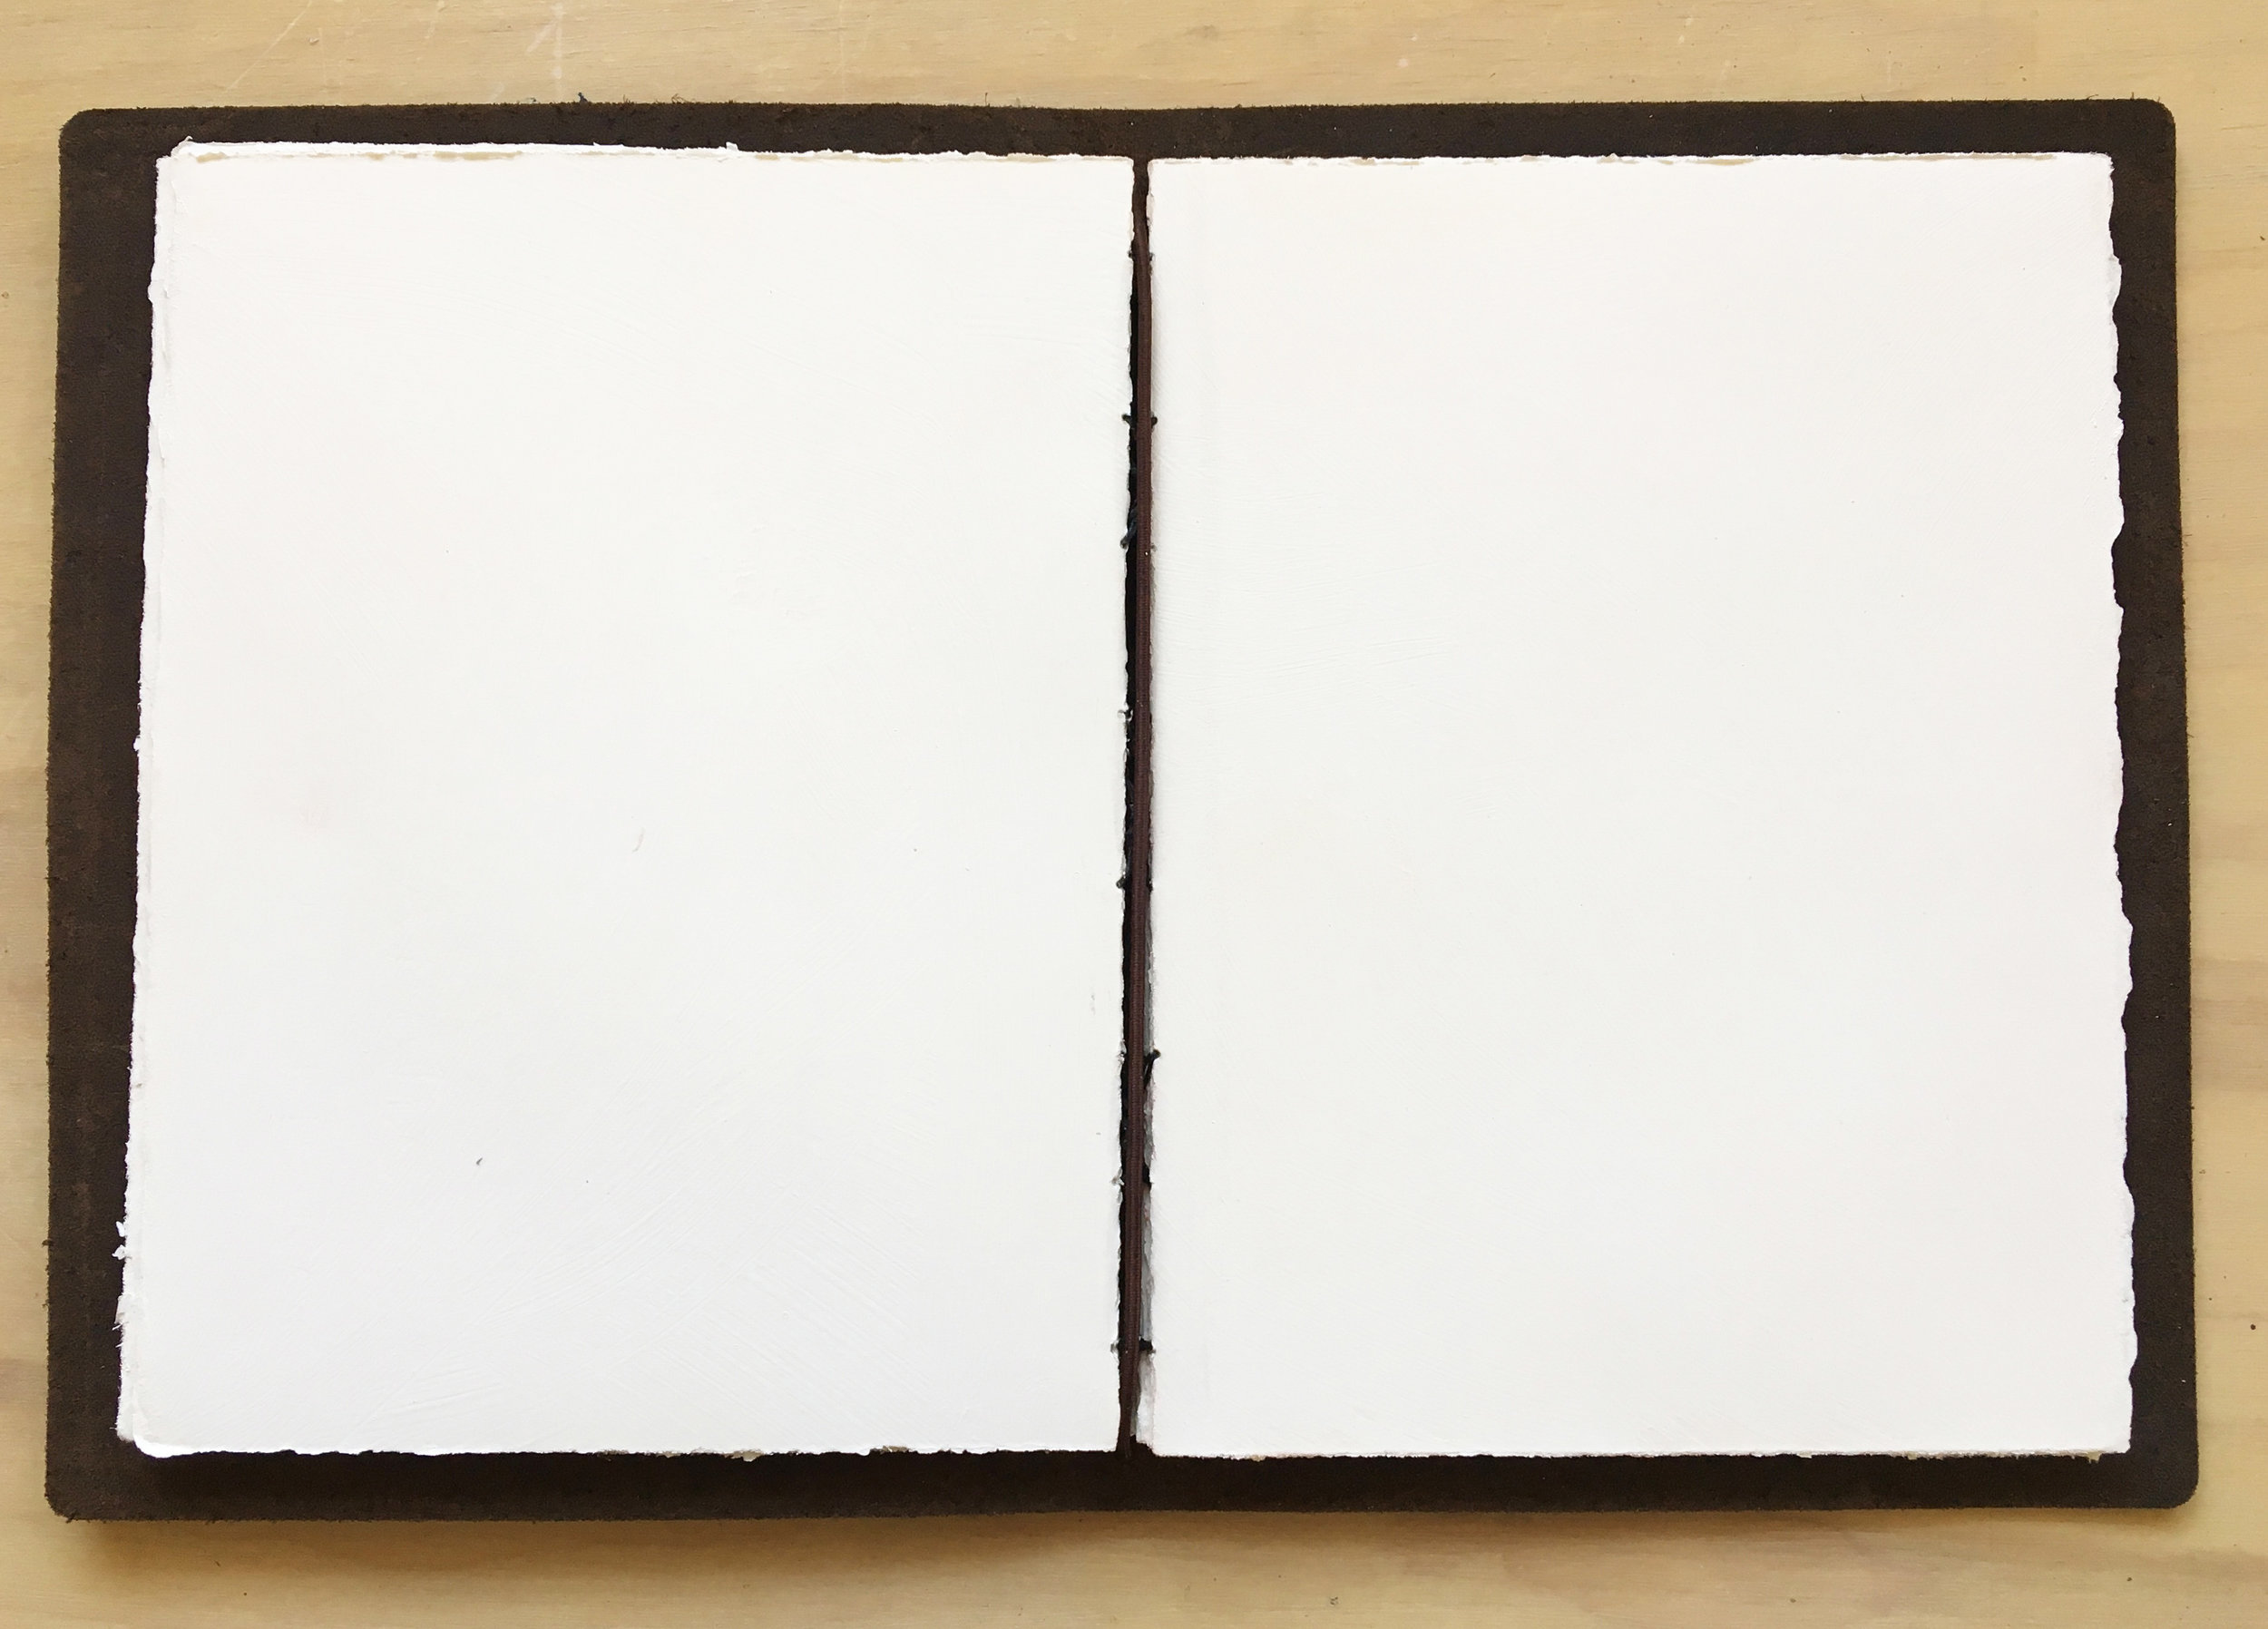 Oh-so-white pages with hand stitched binding by me. The silence is deafening.